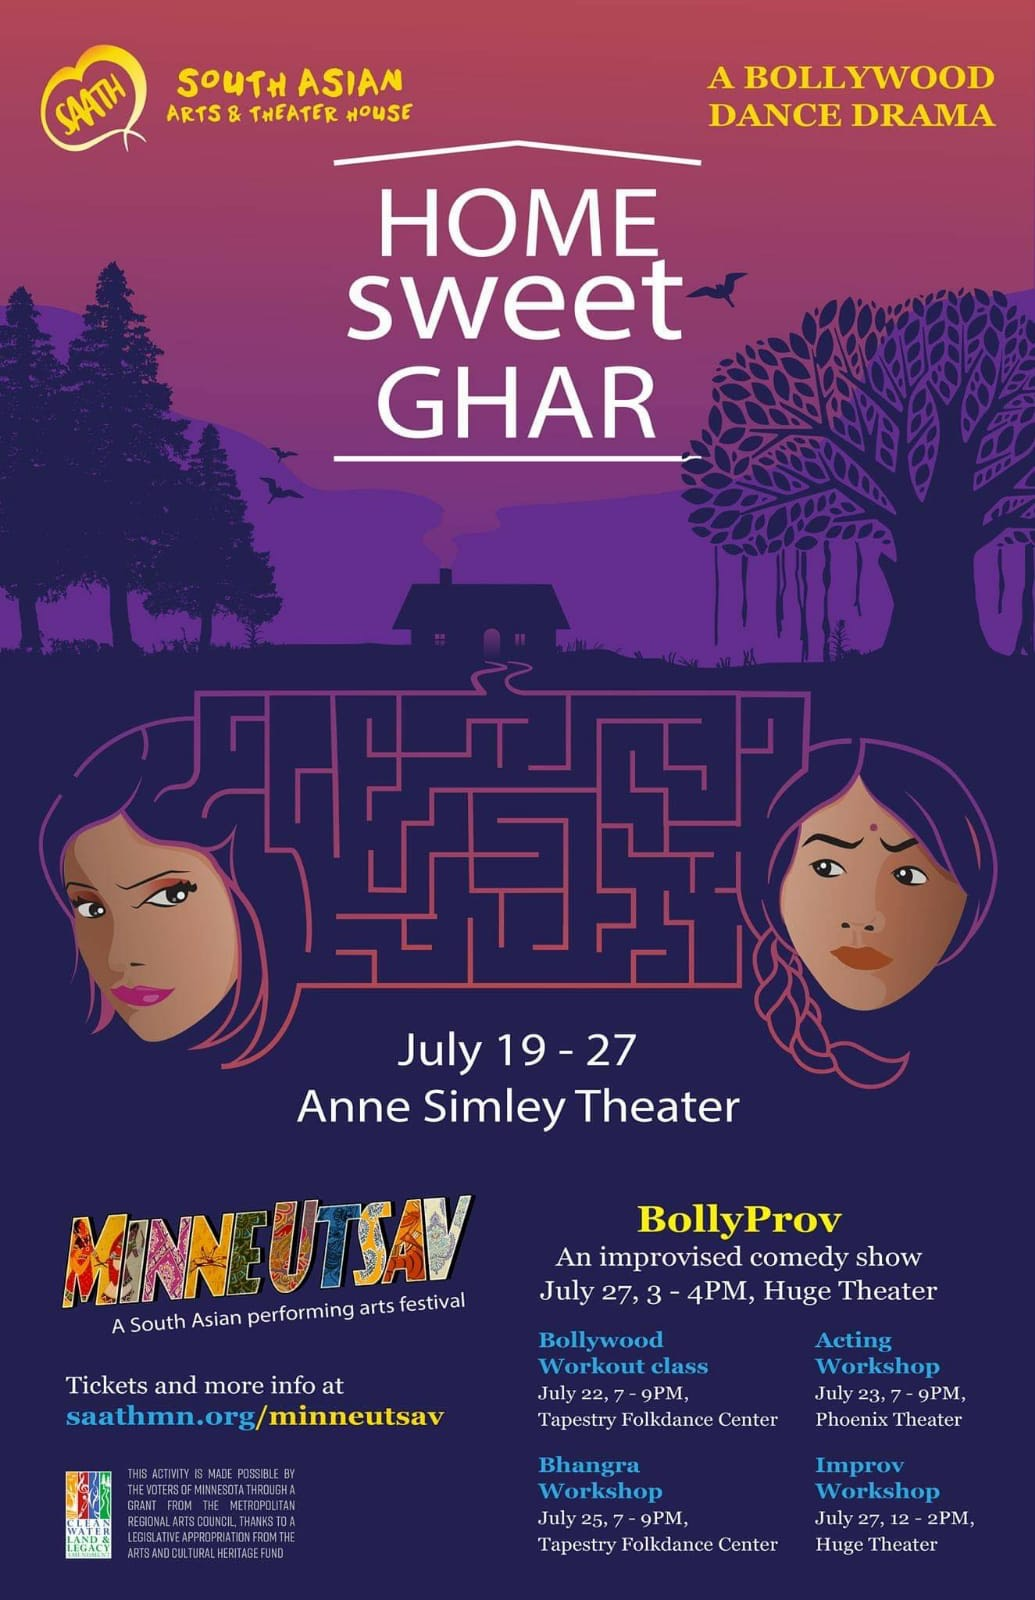 Home Sweet Ghar: Bollywood movie style dance drama